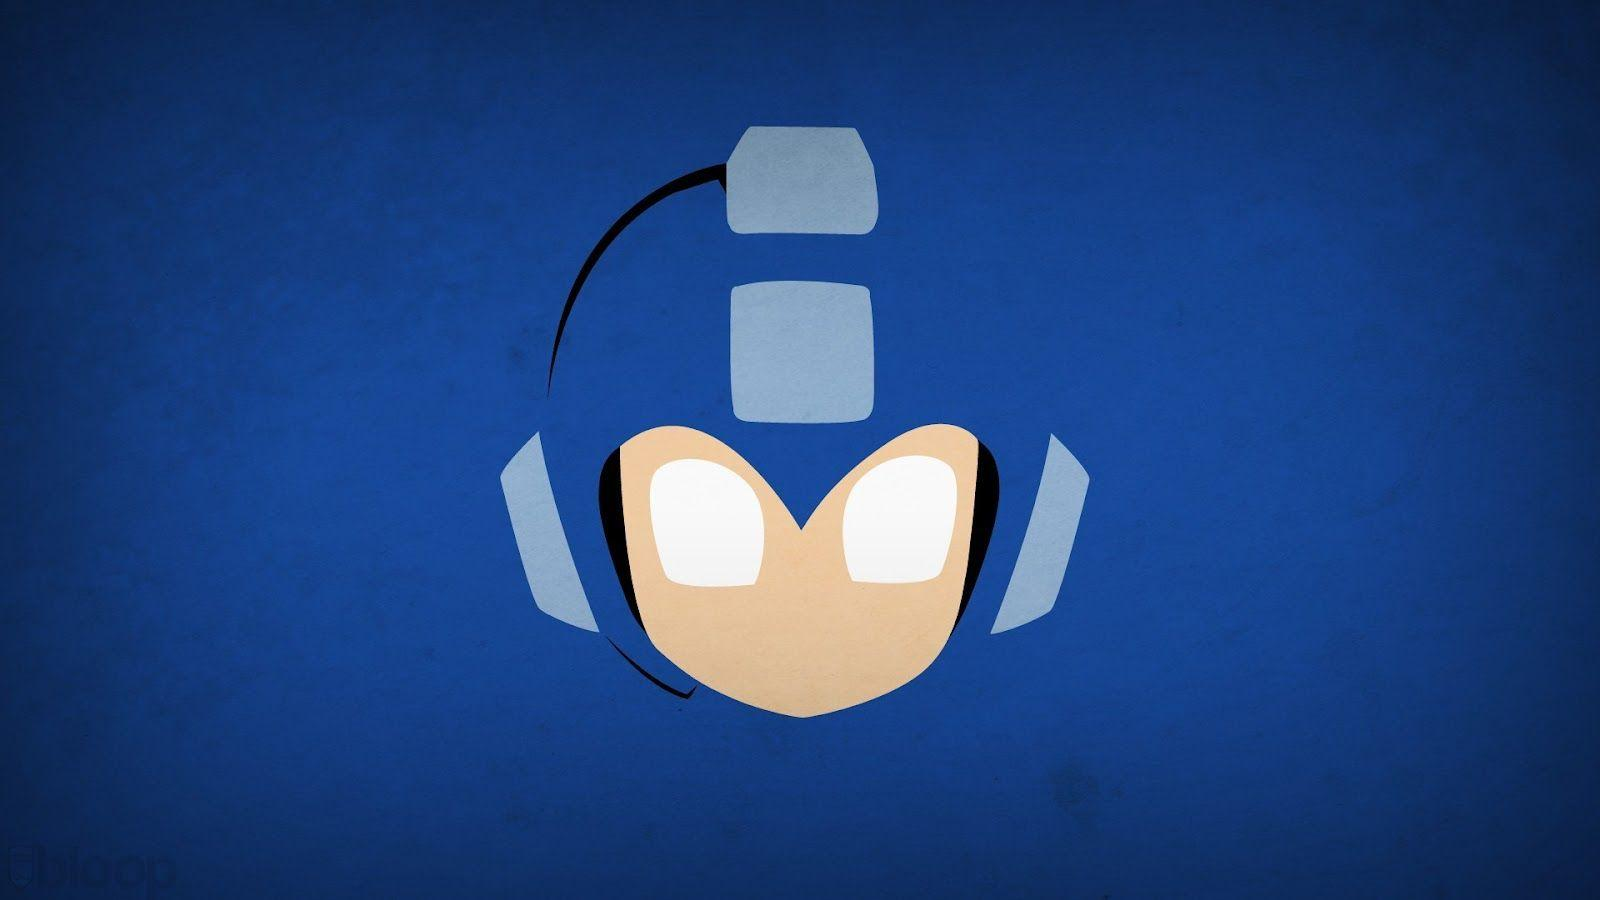 Wallpapers HD Mega Man Cartoon